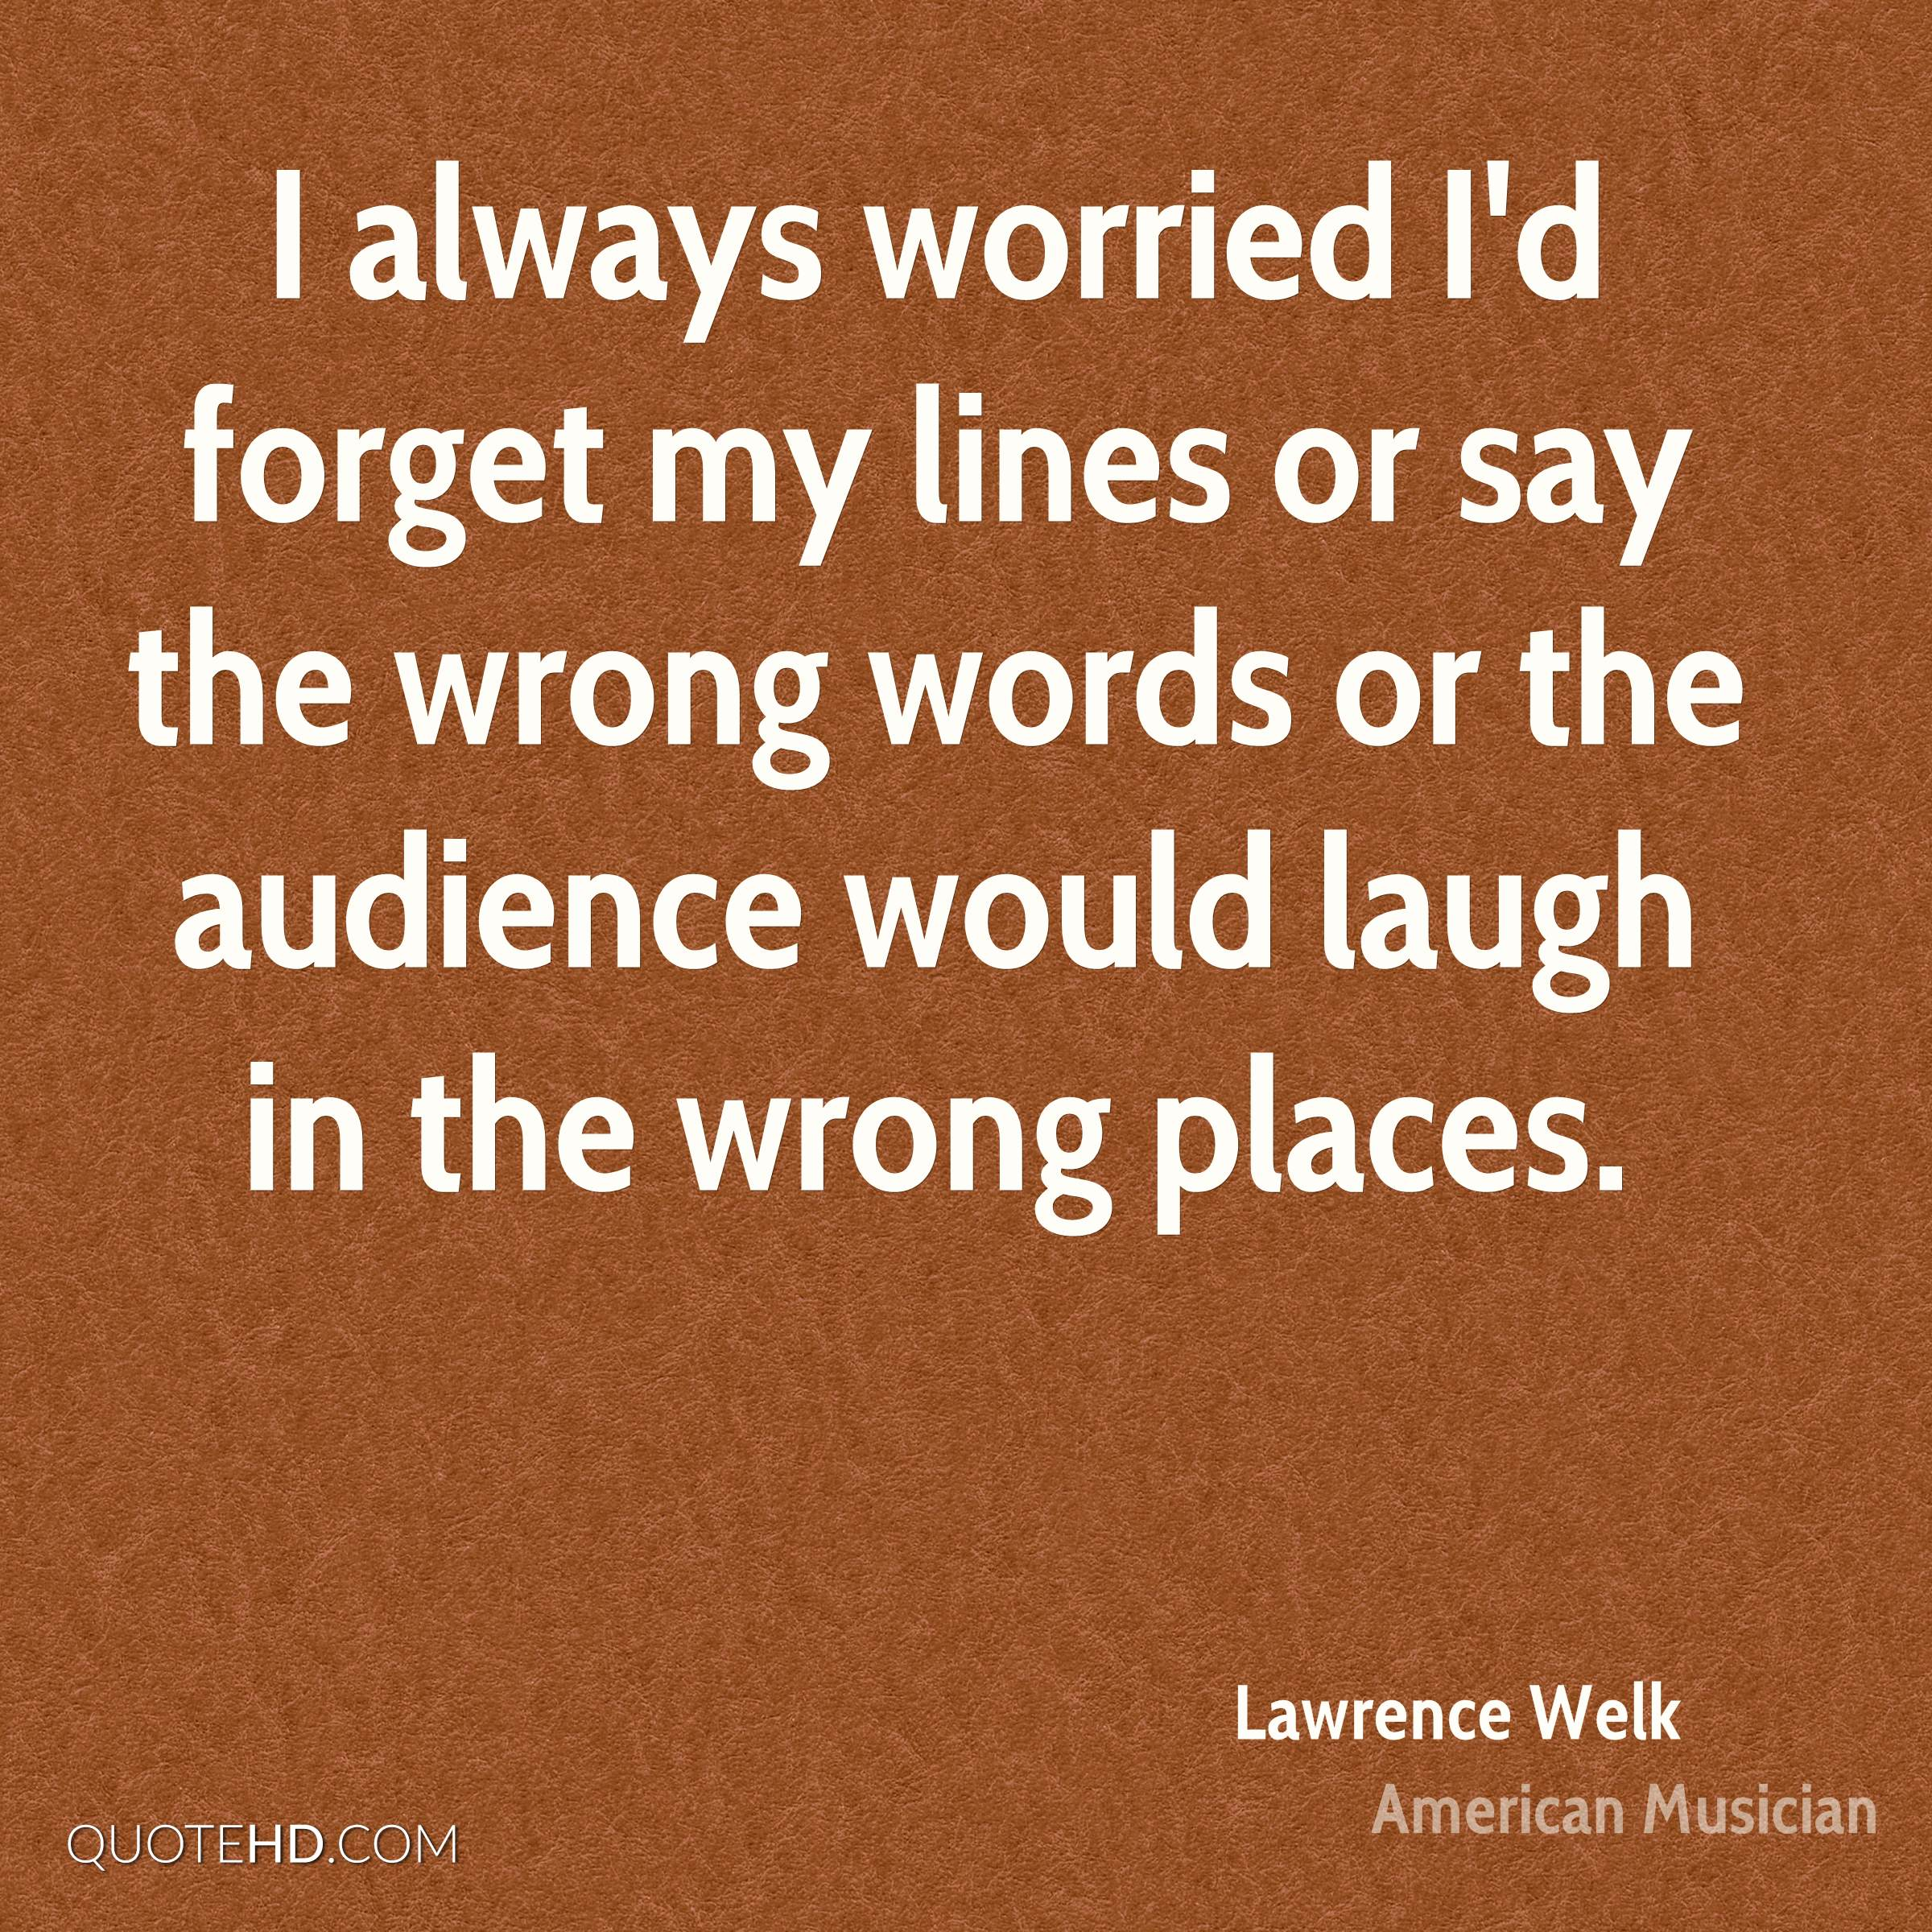 I always worried I'd forget my lines or say the wrong words or the audience would laugh in the wrong places.